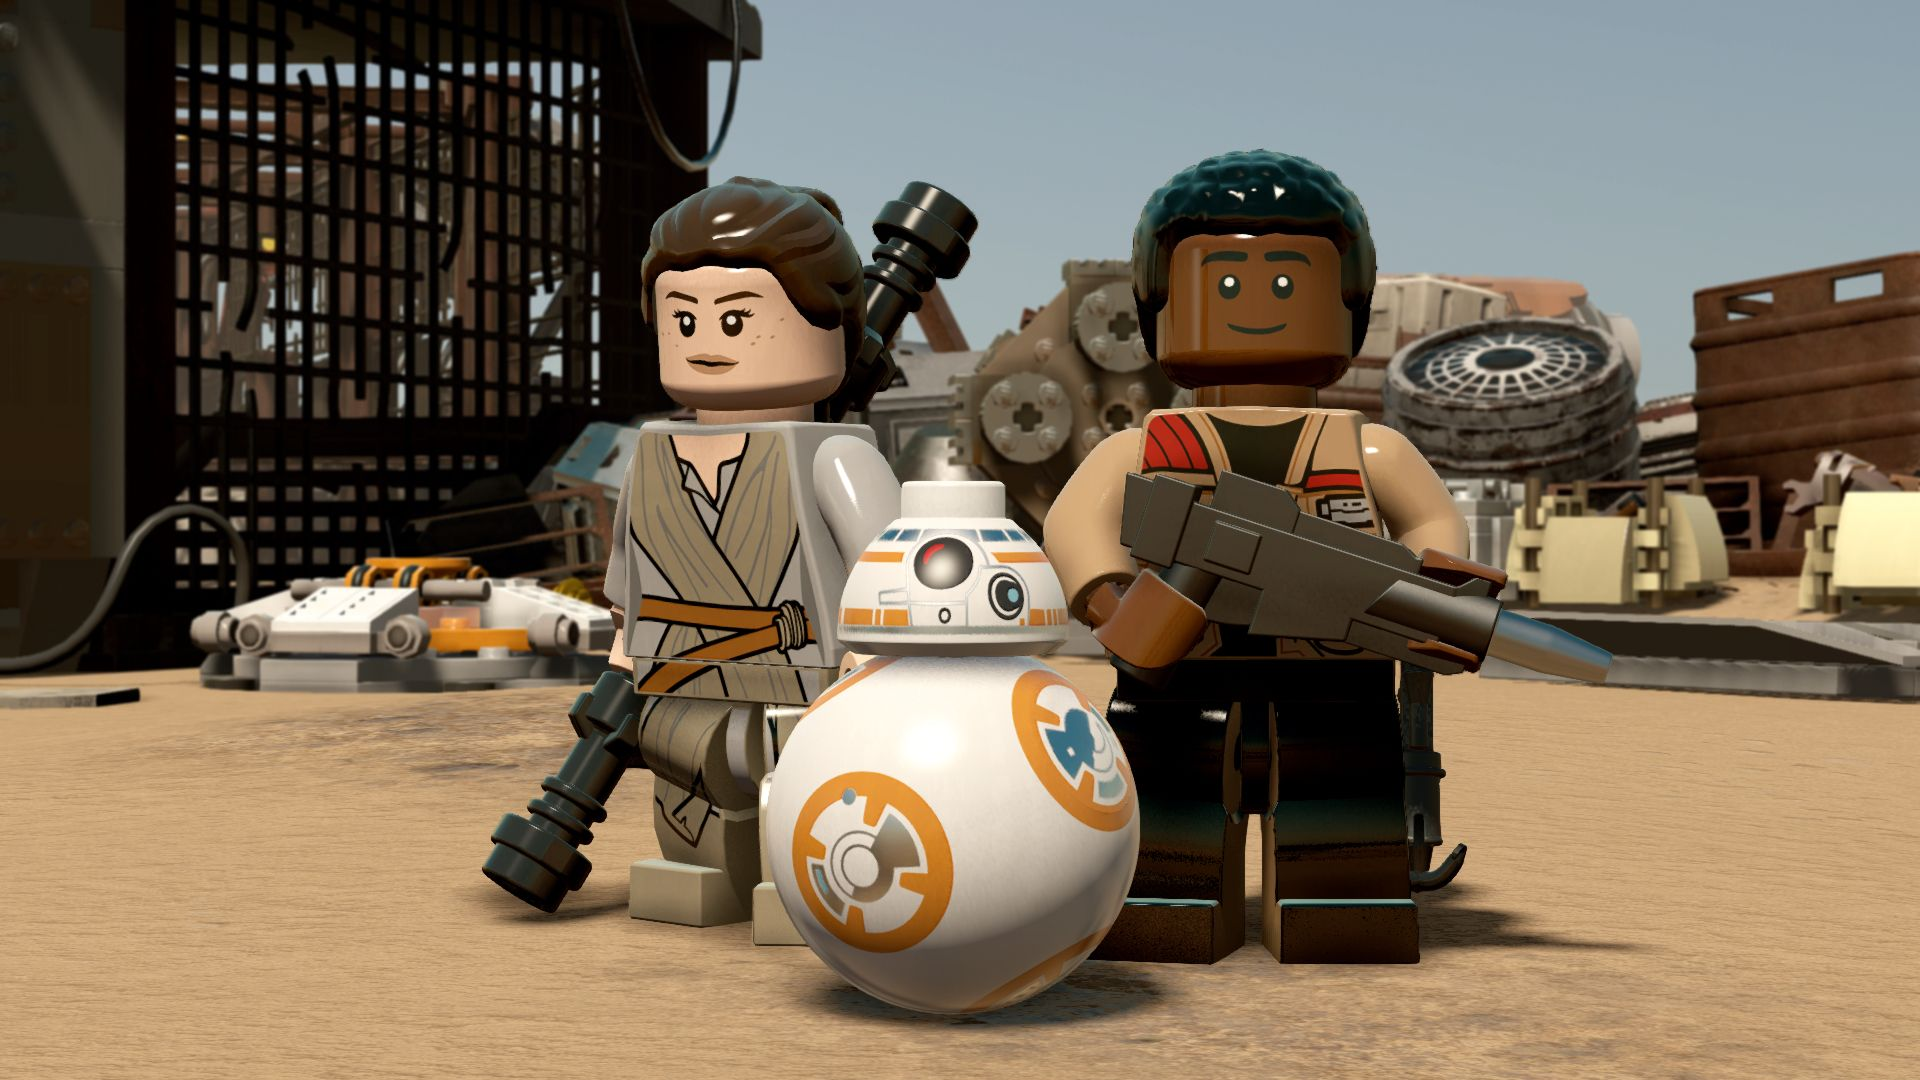 LEGO Star Wars, Seriously?